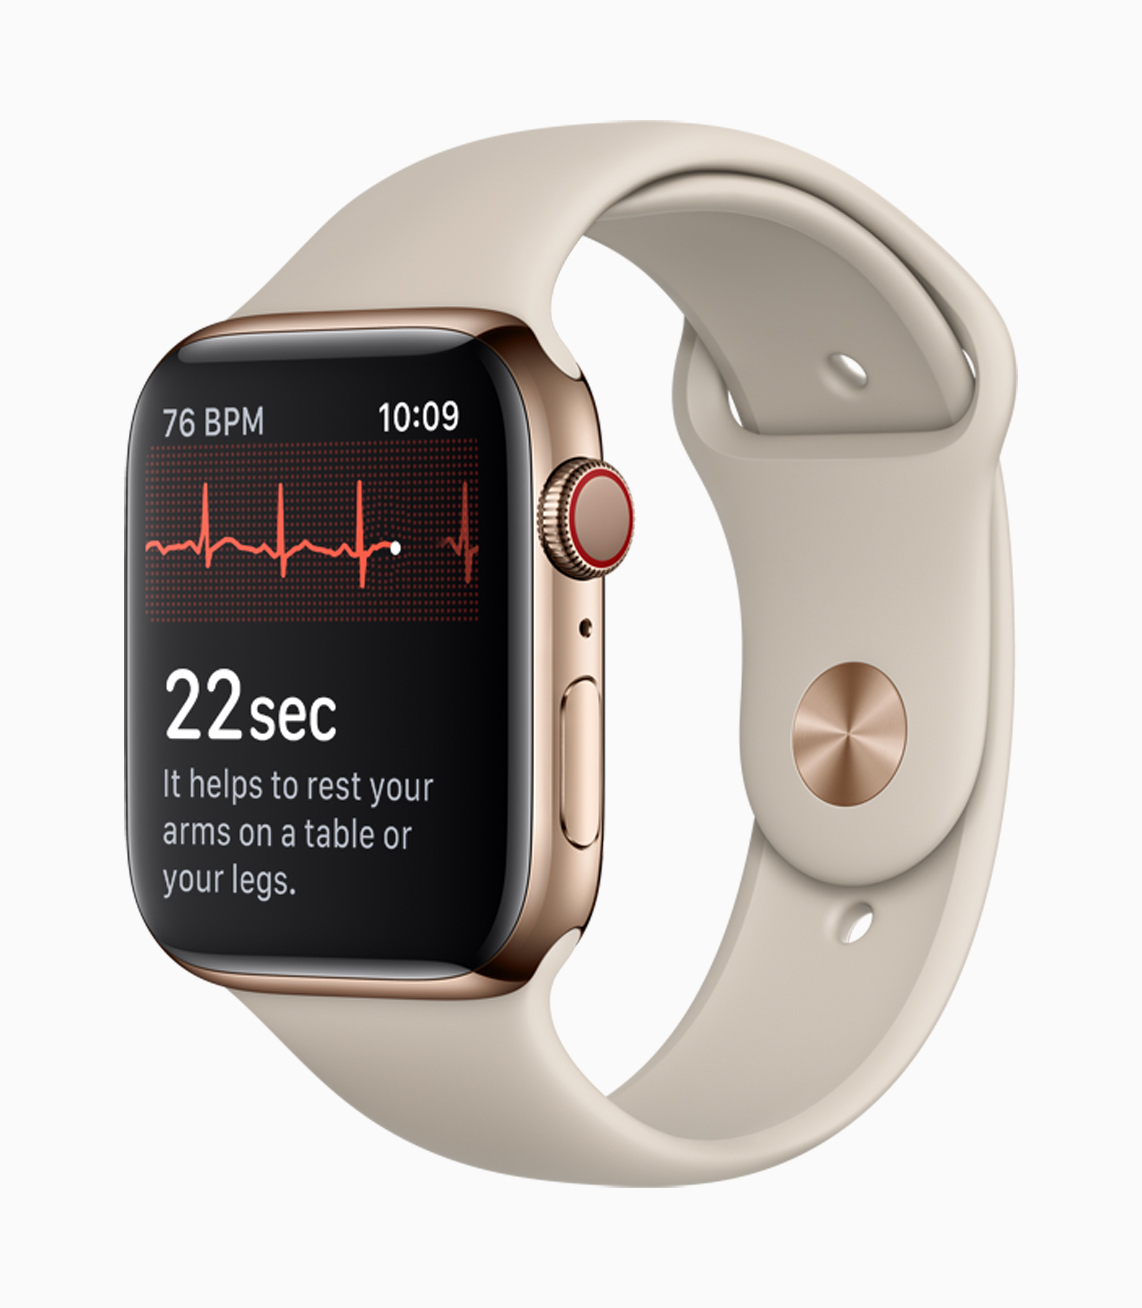 https://www.apple.com/newsroom/images/product/watch/standard/apple-watch-series4_ecg-crown_09122018_carousel.jpg.large_2x.jpg